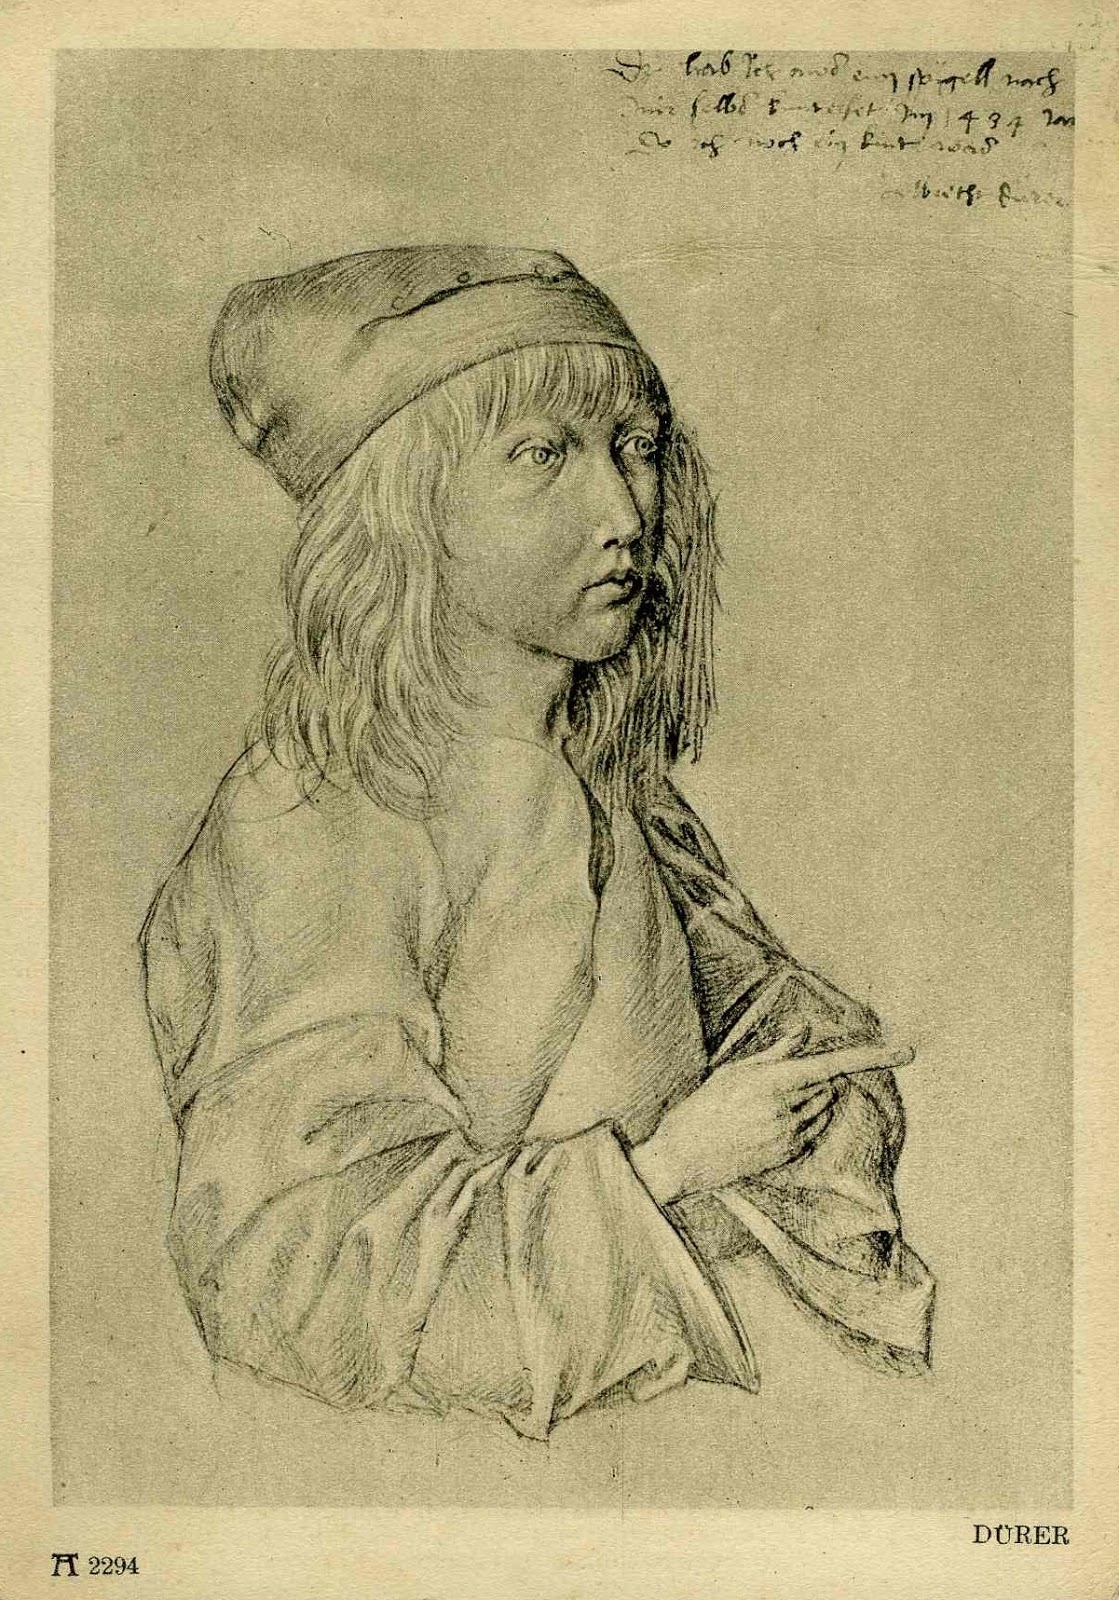 What is the most important work by albrecht durer?